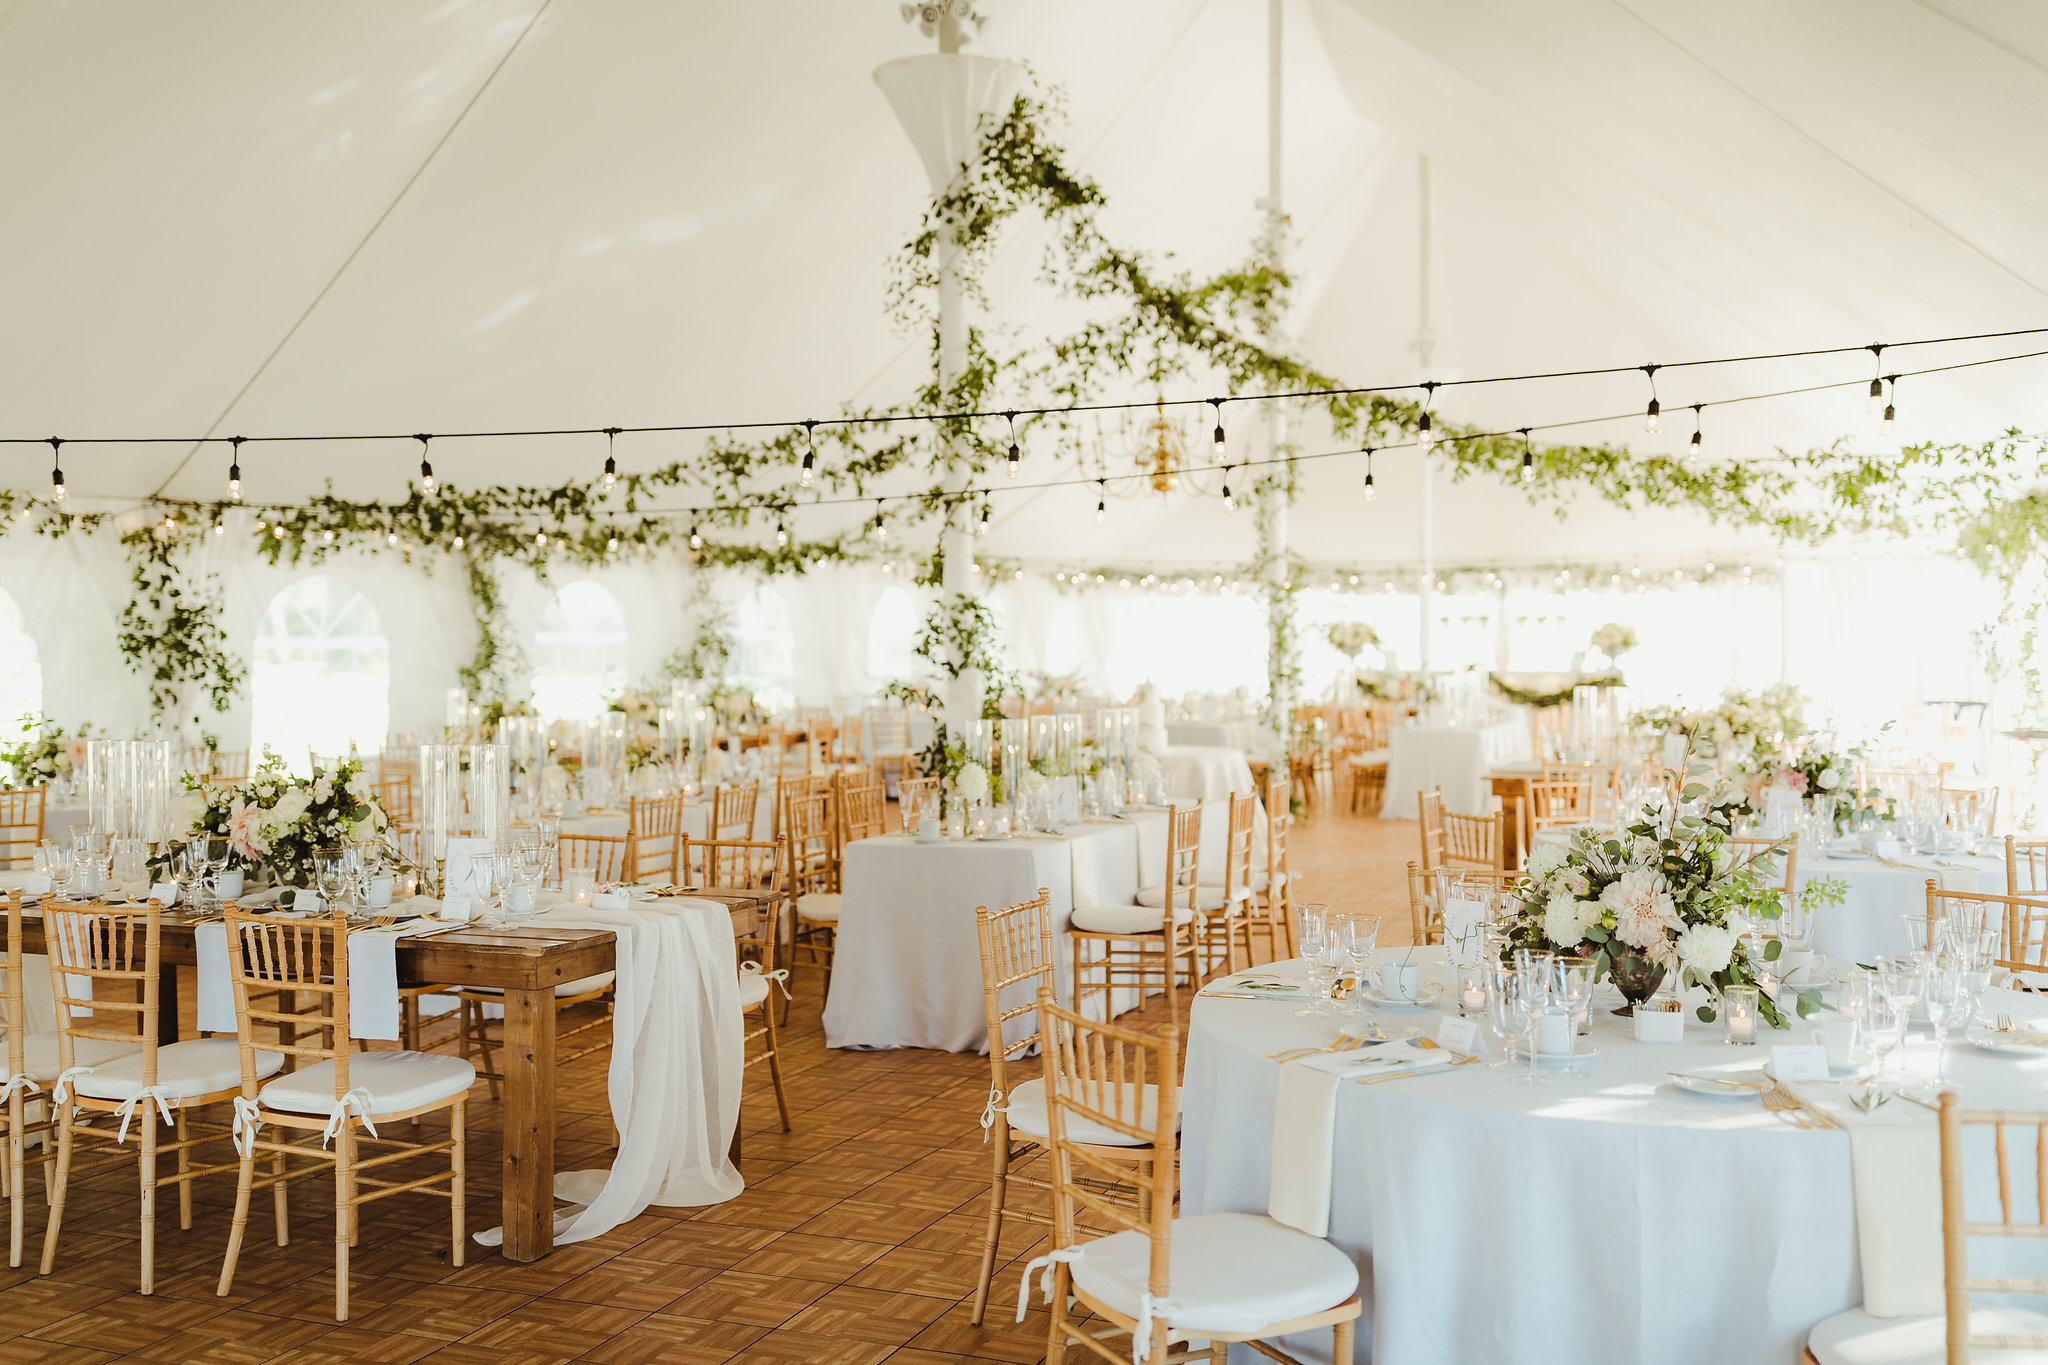 custom wedding planners ann arbor michigan event design paper goods florals tent